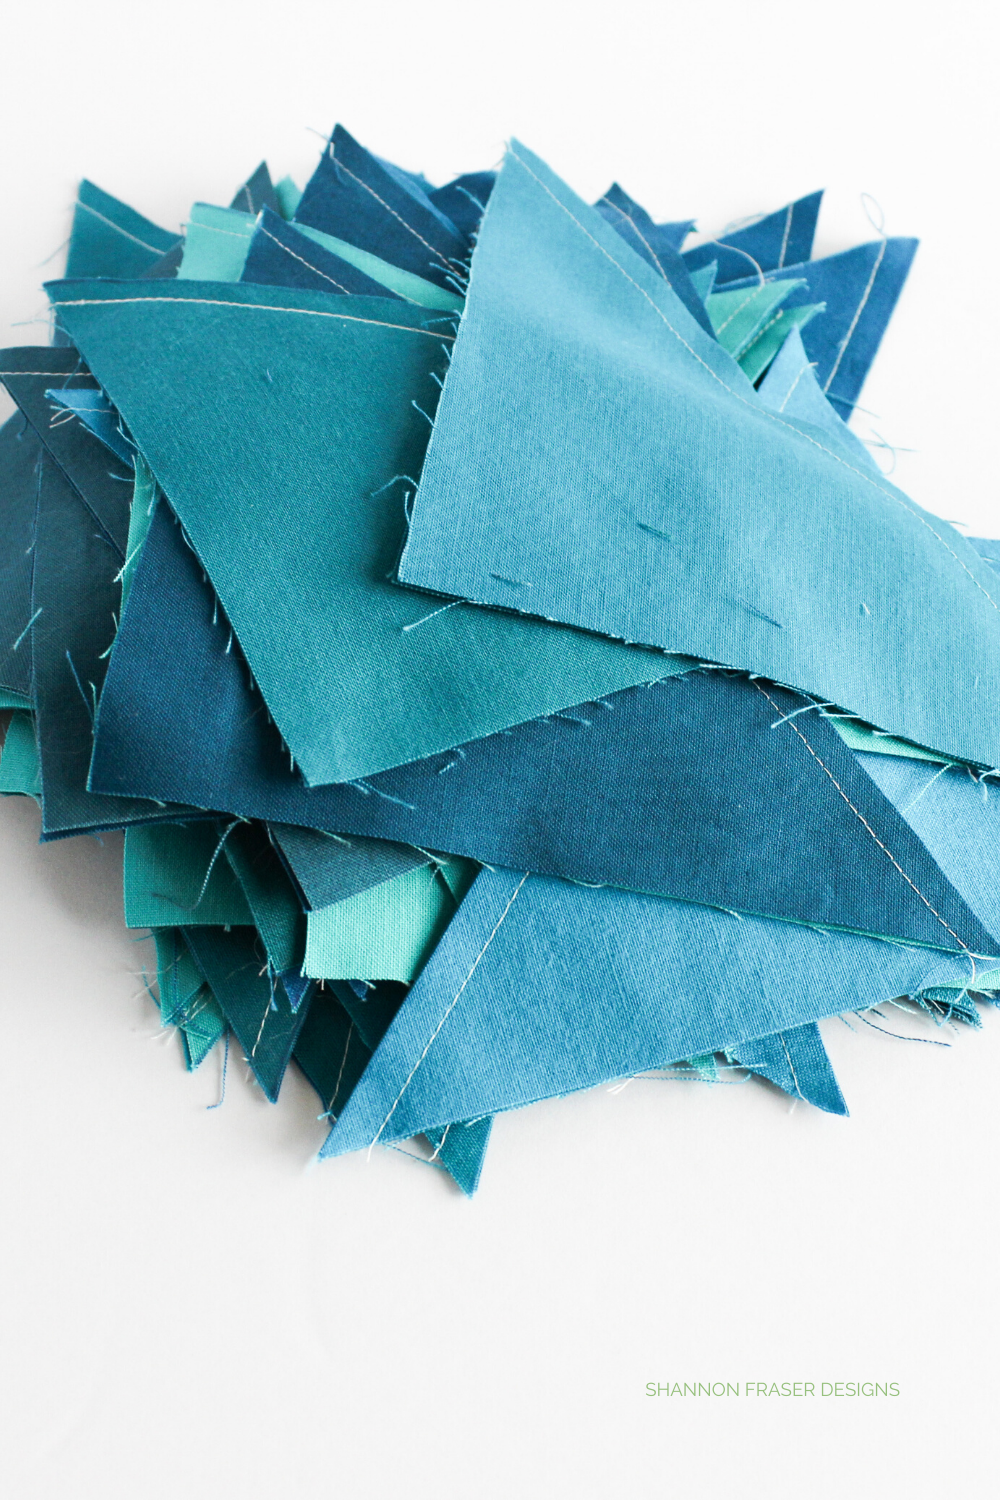 All different shades of blue half square triangles ready to be pressed and trimmed